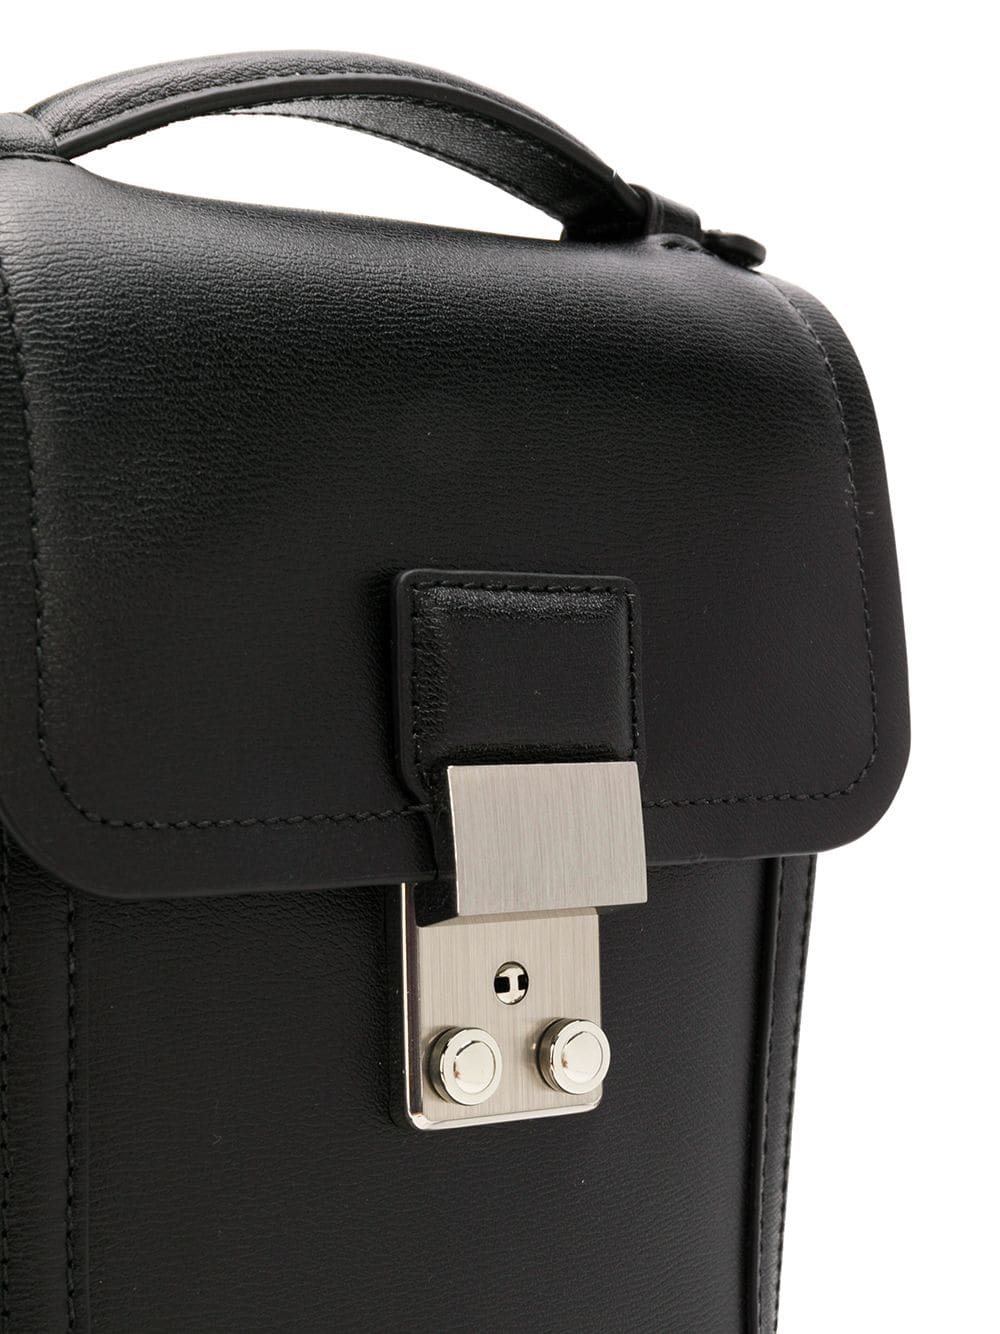 Phillip Lim Black Pashli Camera Crossbody Bag